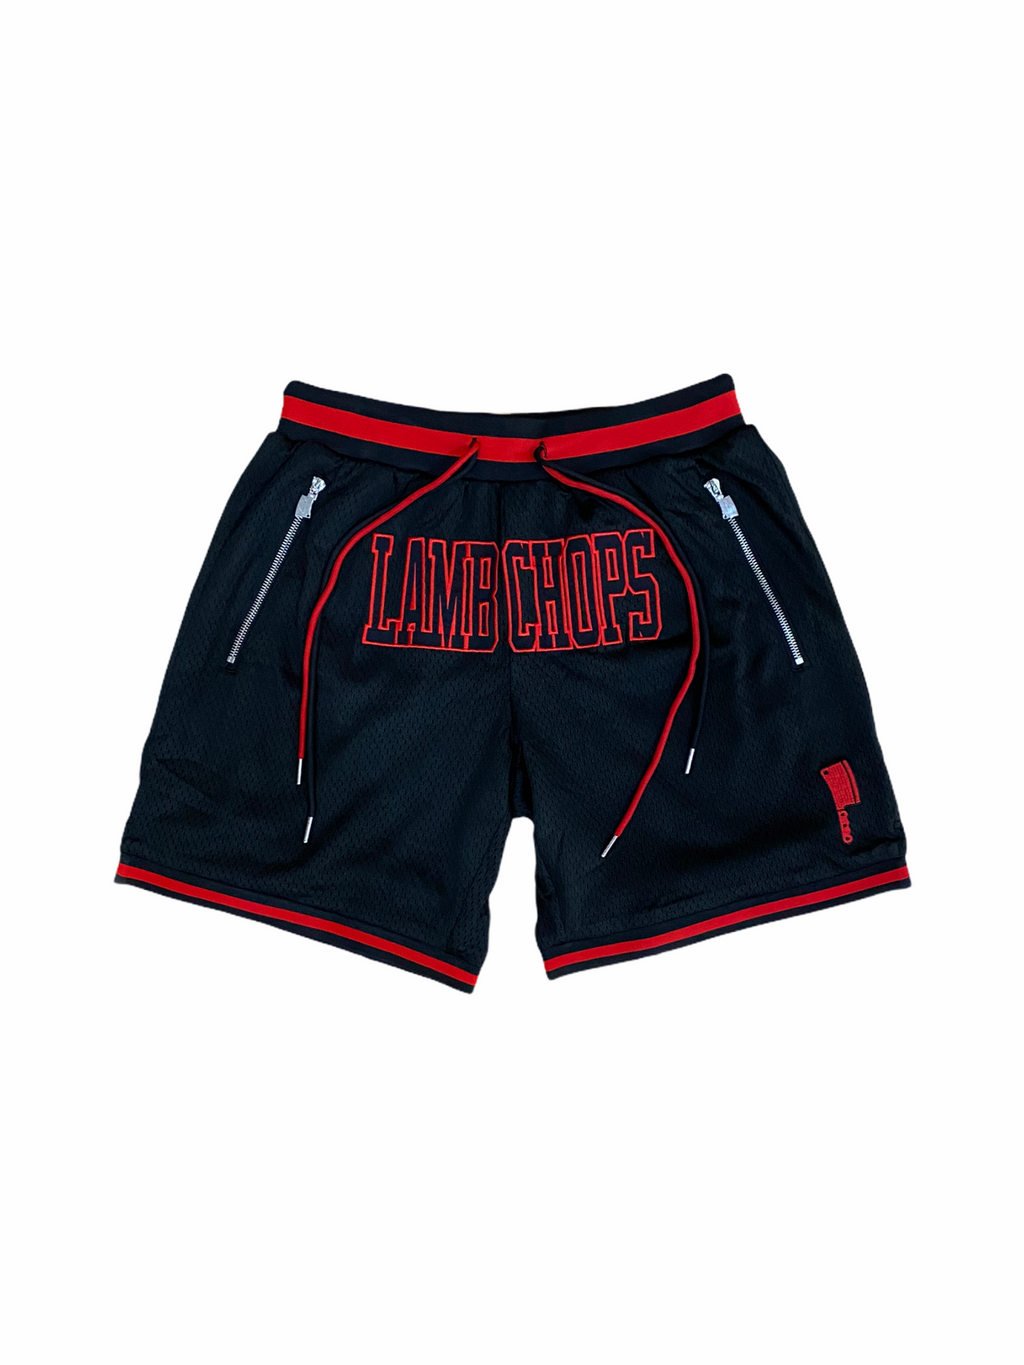 Cleaver Shorts